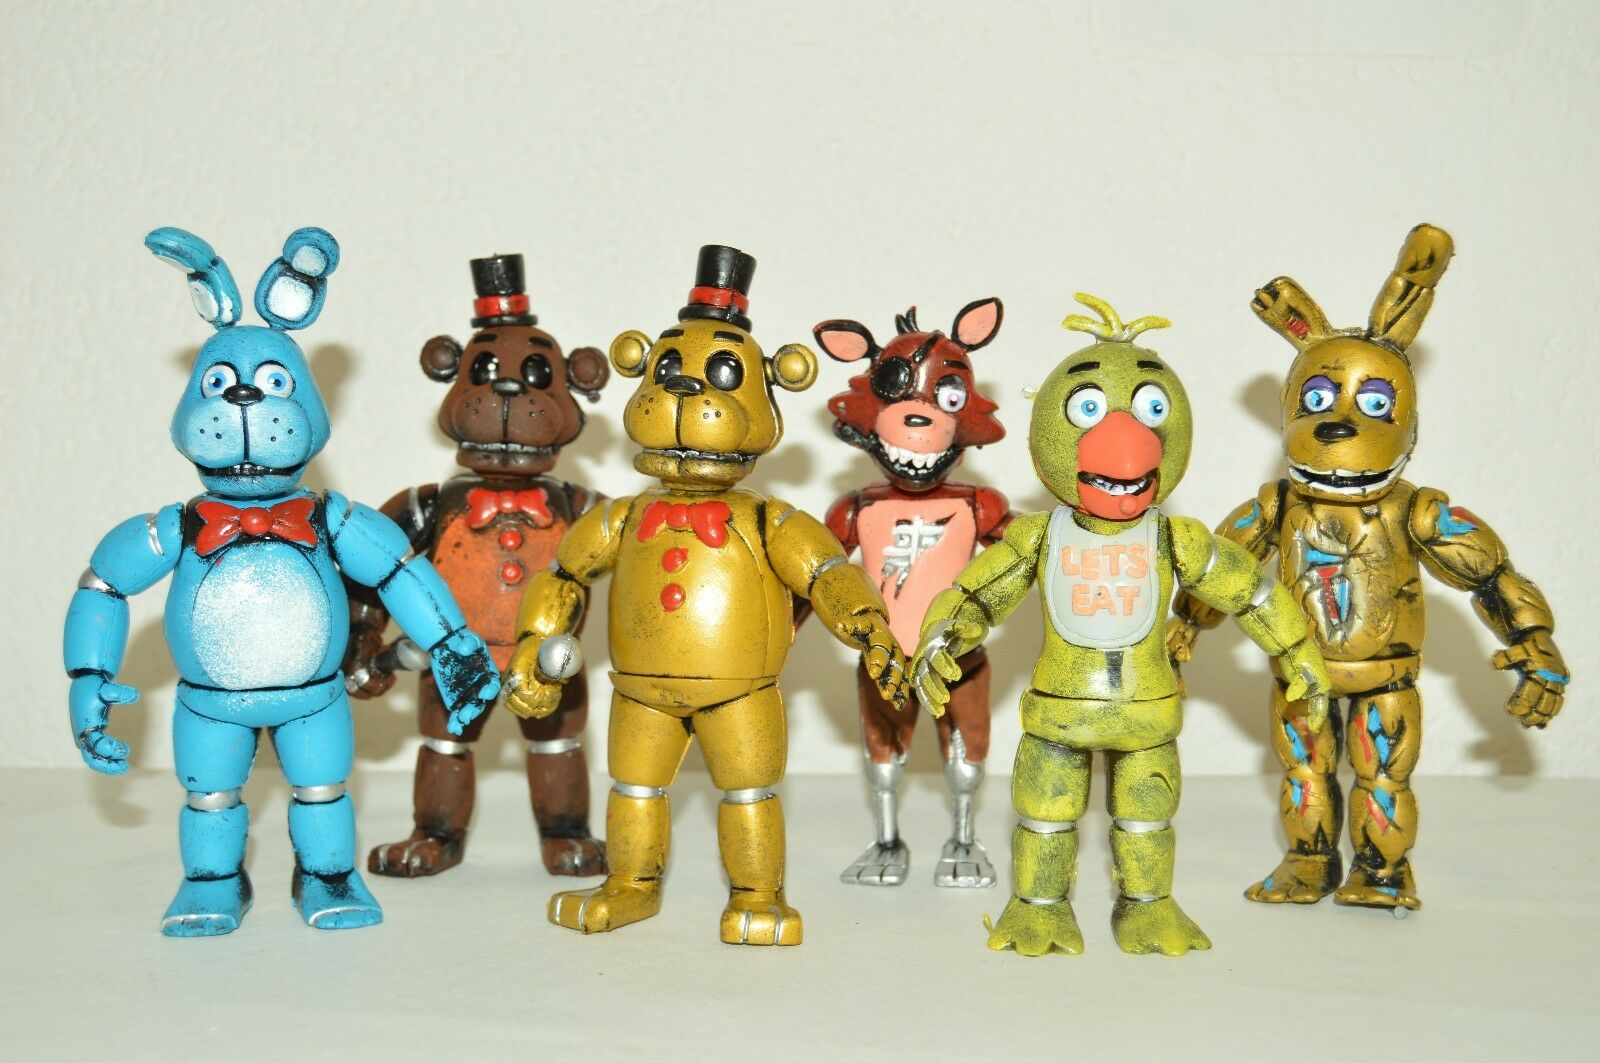 giocattolo MEXICAN SET 6 cifraS FIVE NIGHTS AT FrossoDY'S ANIMATRONICS FrossoDY 7 IN